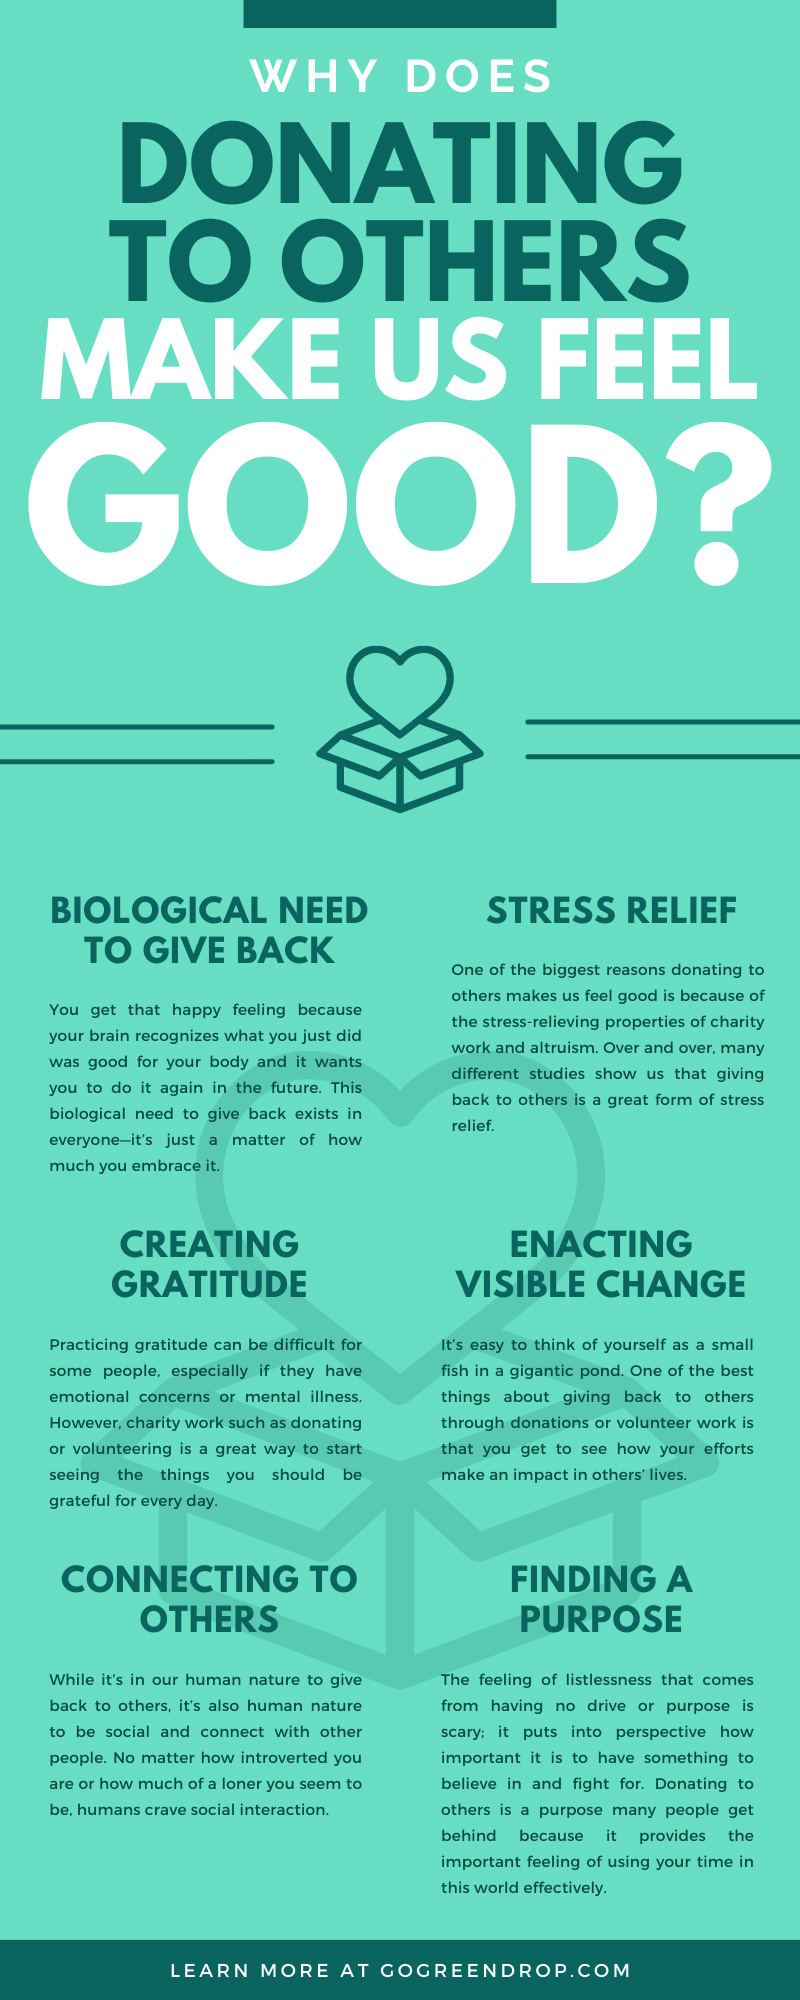 Why Does Donating To Others Make Us Feel Good?